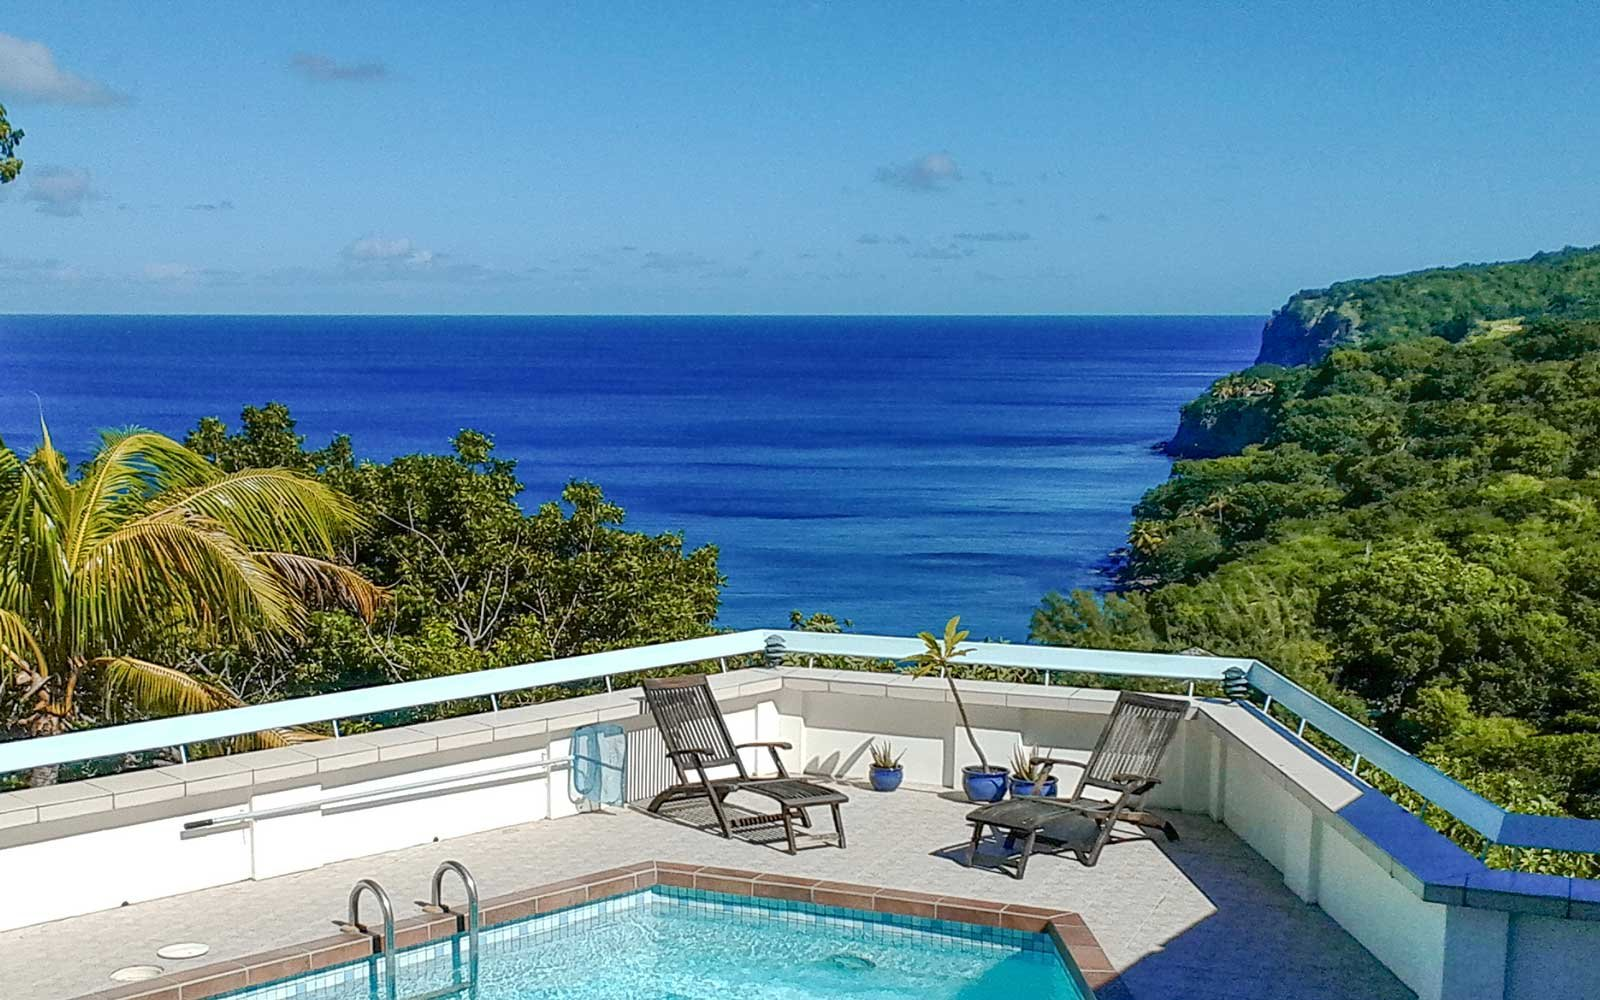 These Are the 20 Gorgeous Caribbean Airbnbs Topping Travelers' Wish Lists